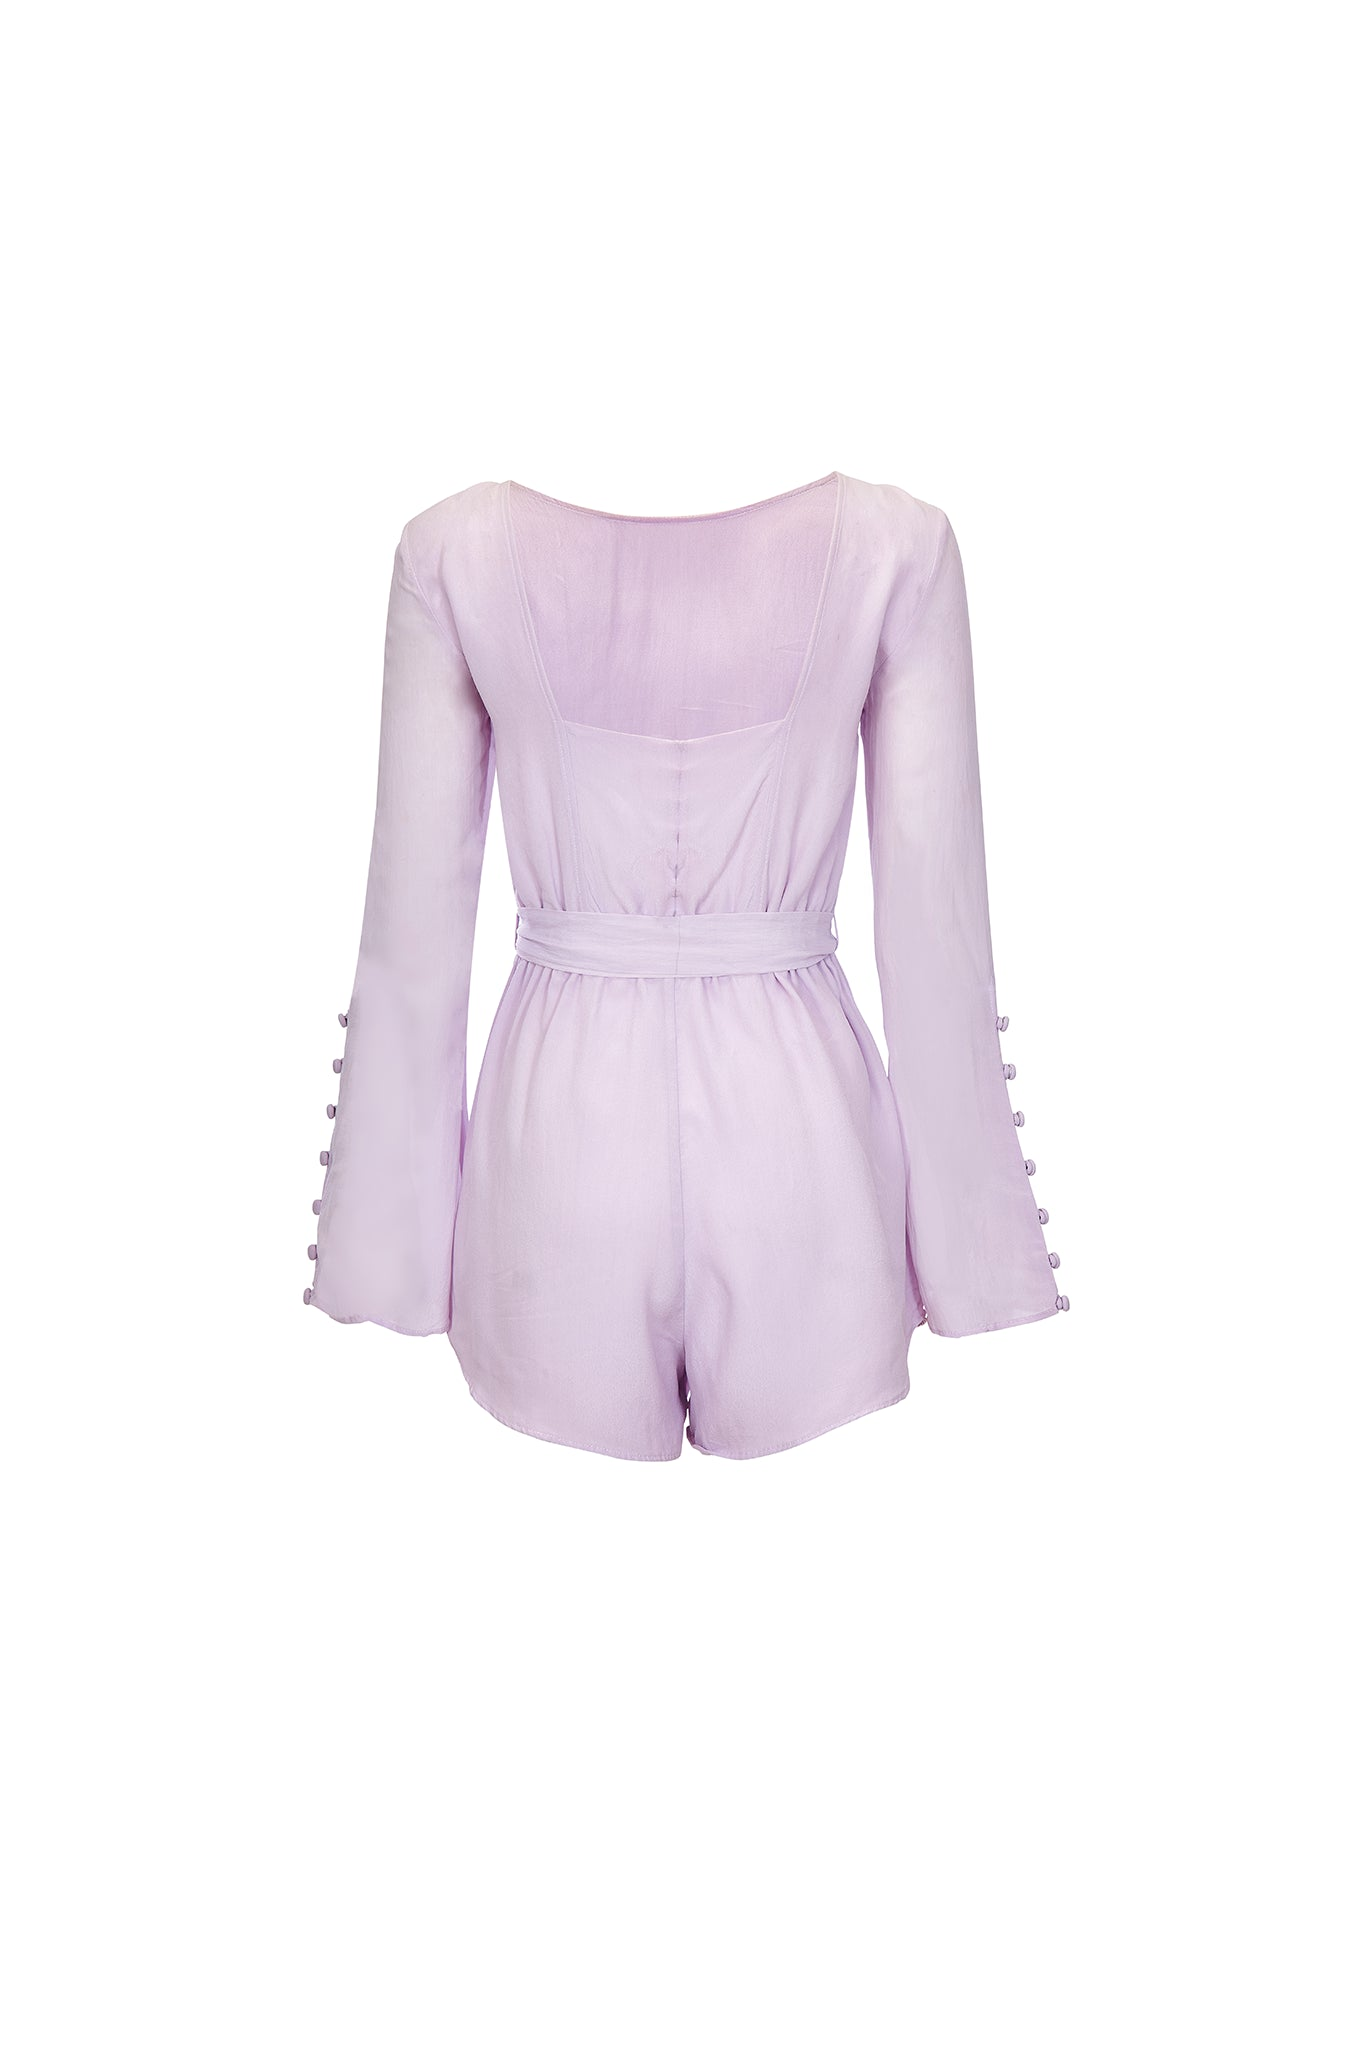 Belle long-sleeve romper in lavender - product shot back